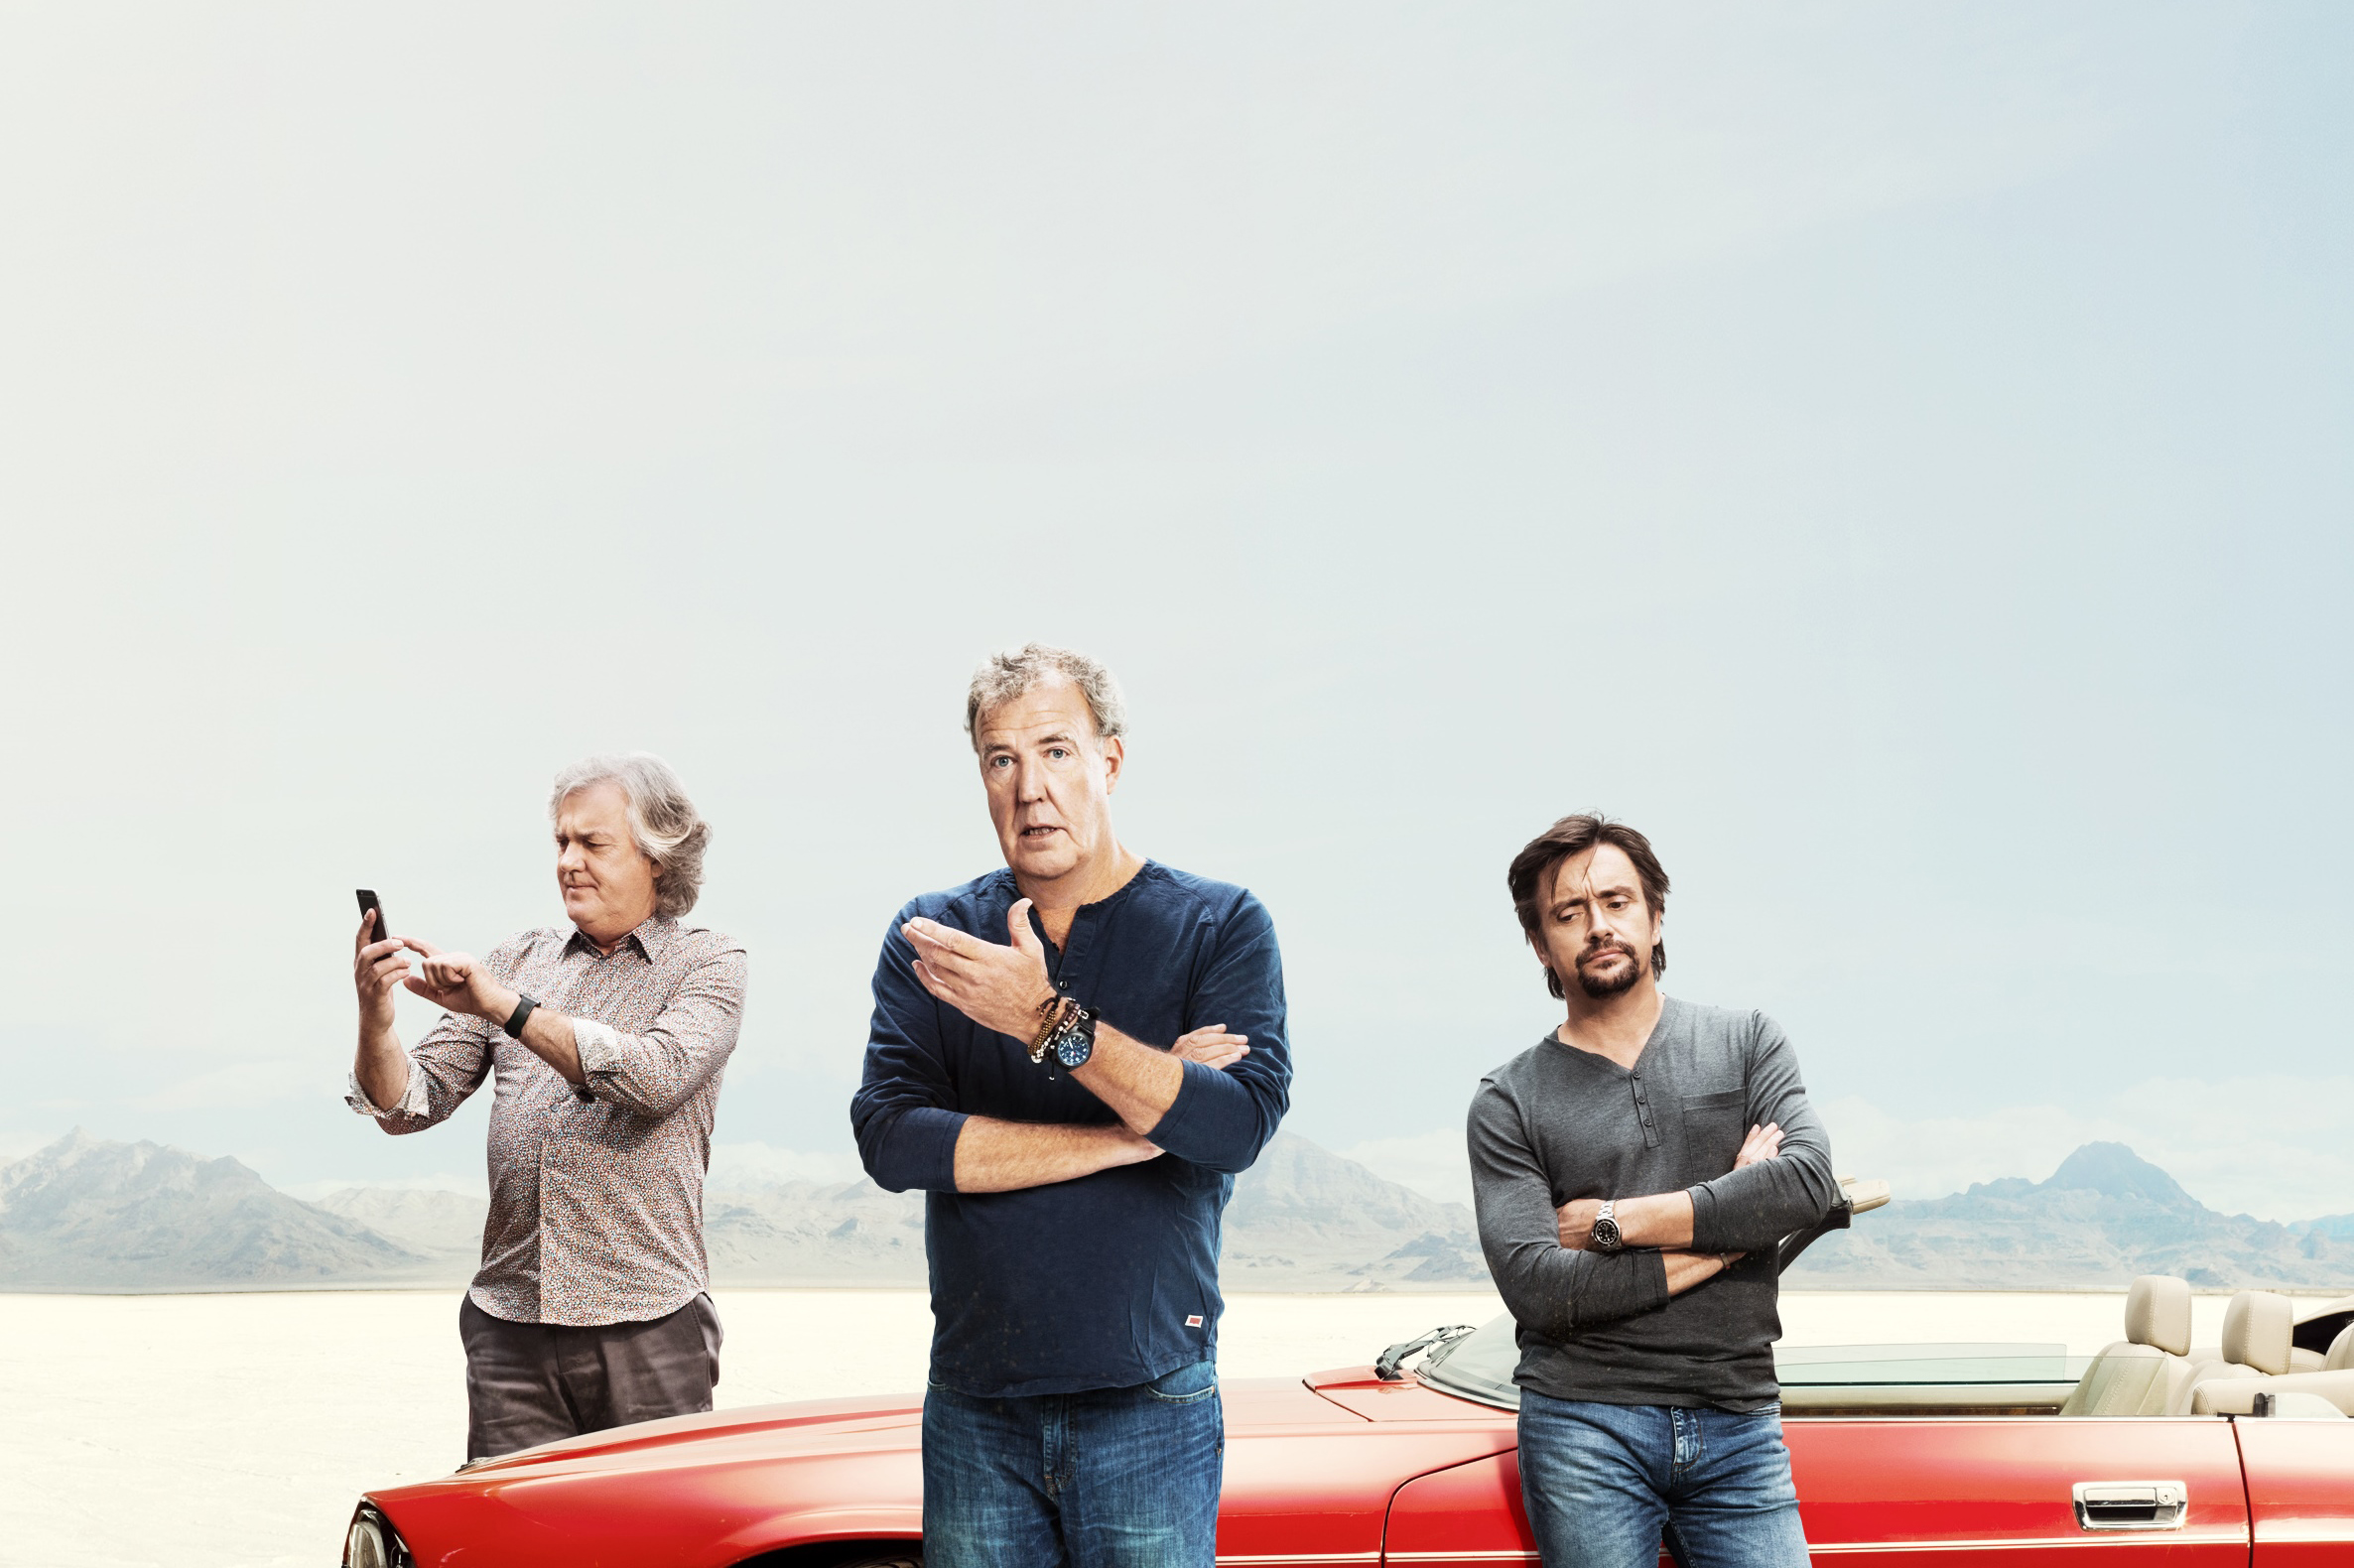 the grand tour season 2 to feature tesla electric car jeremy clarkson says it 39 s time to. Black Bedroom Furniture Sets. Home Design Ideas